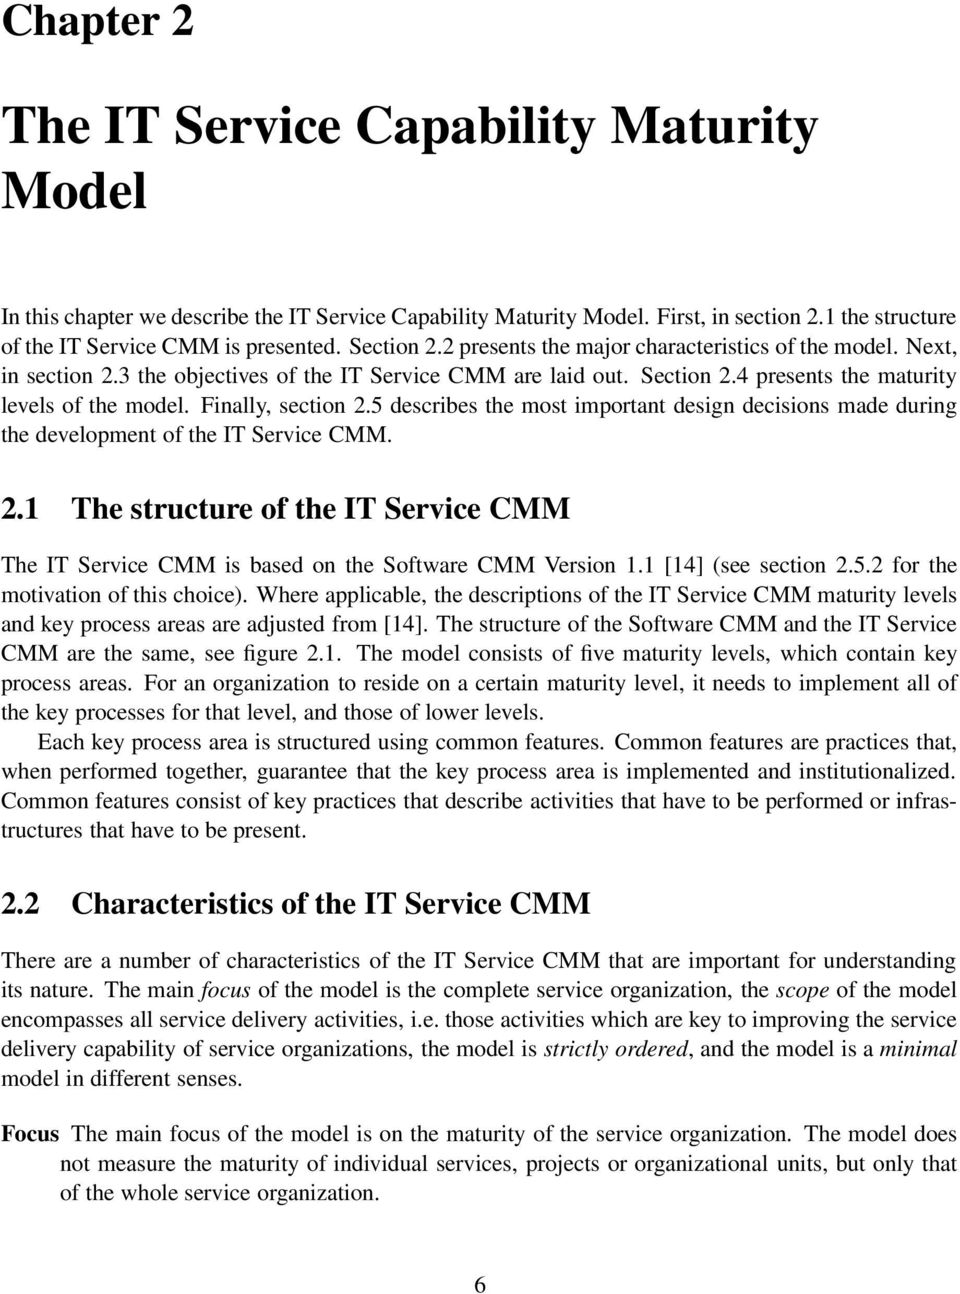 Finally, section 2.5 describes the most important design decisions made during the development of the IT Service CMM. 2.1 The structure of the IT Service CMM The IT Service CMM is based on the Software CMM Version 1.